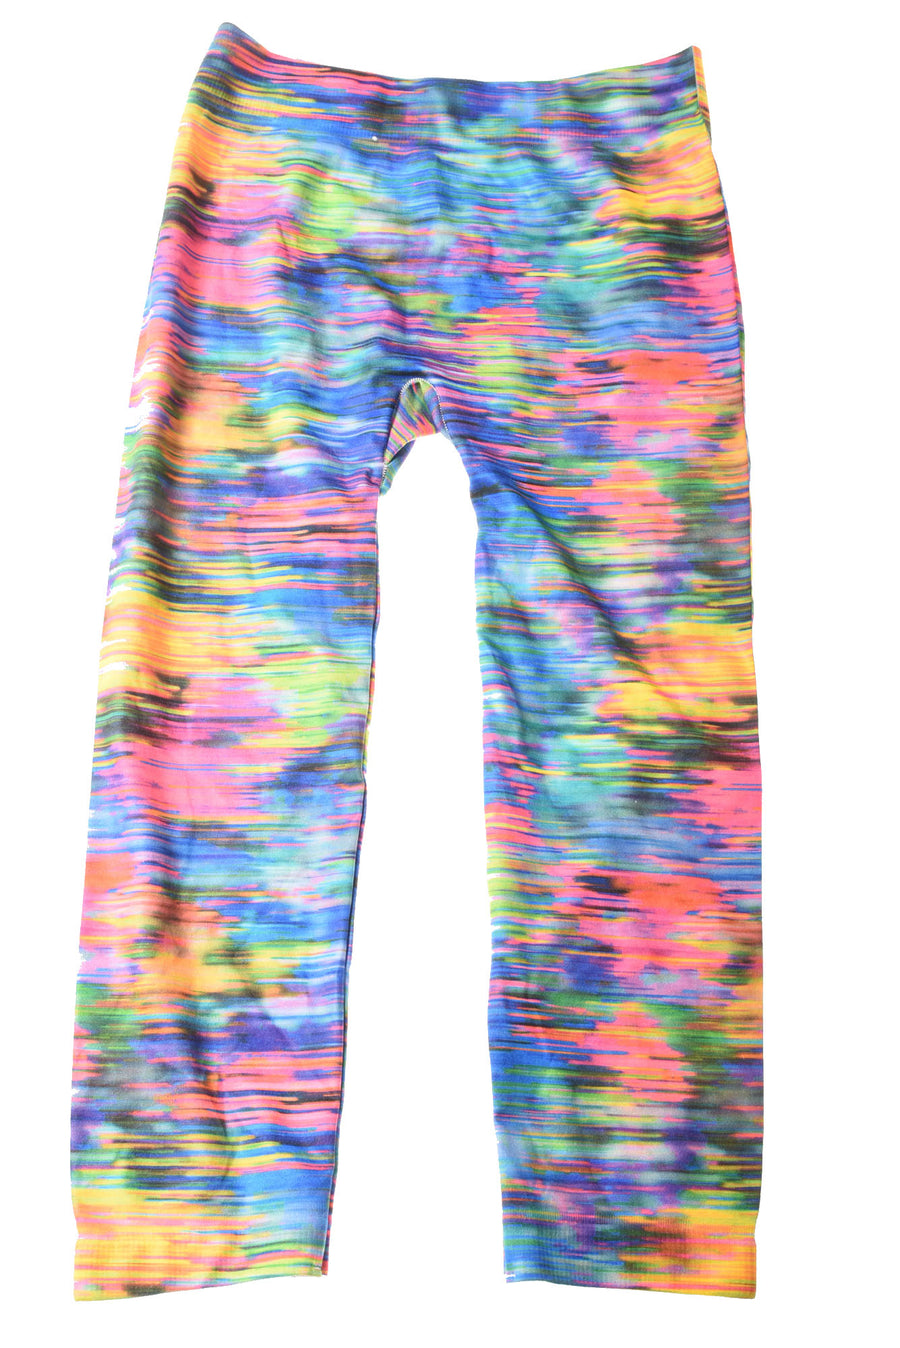 USED No Boundaries Women's Leggings Medium Multi-Color